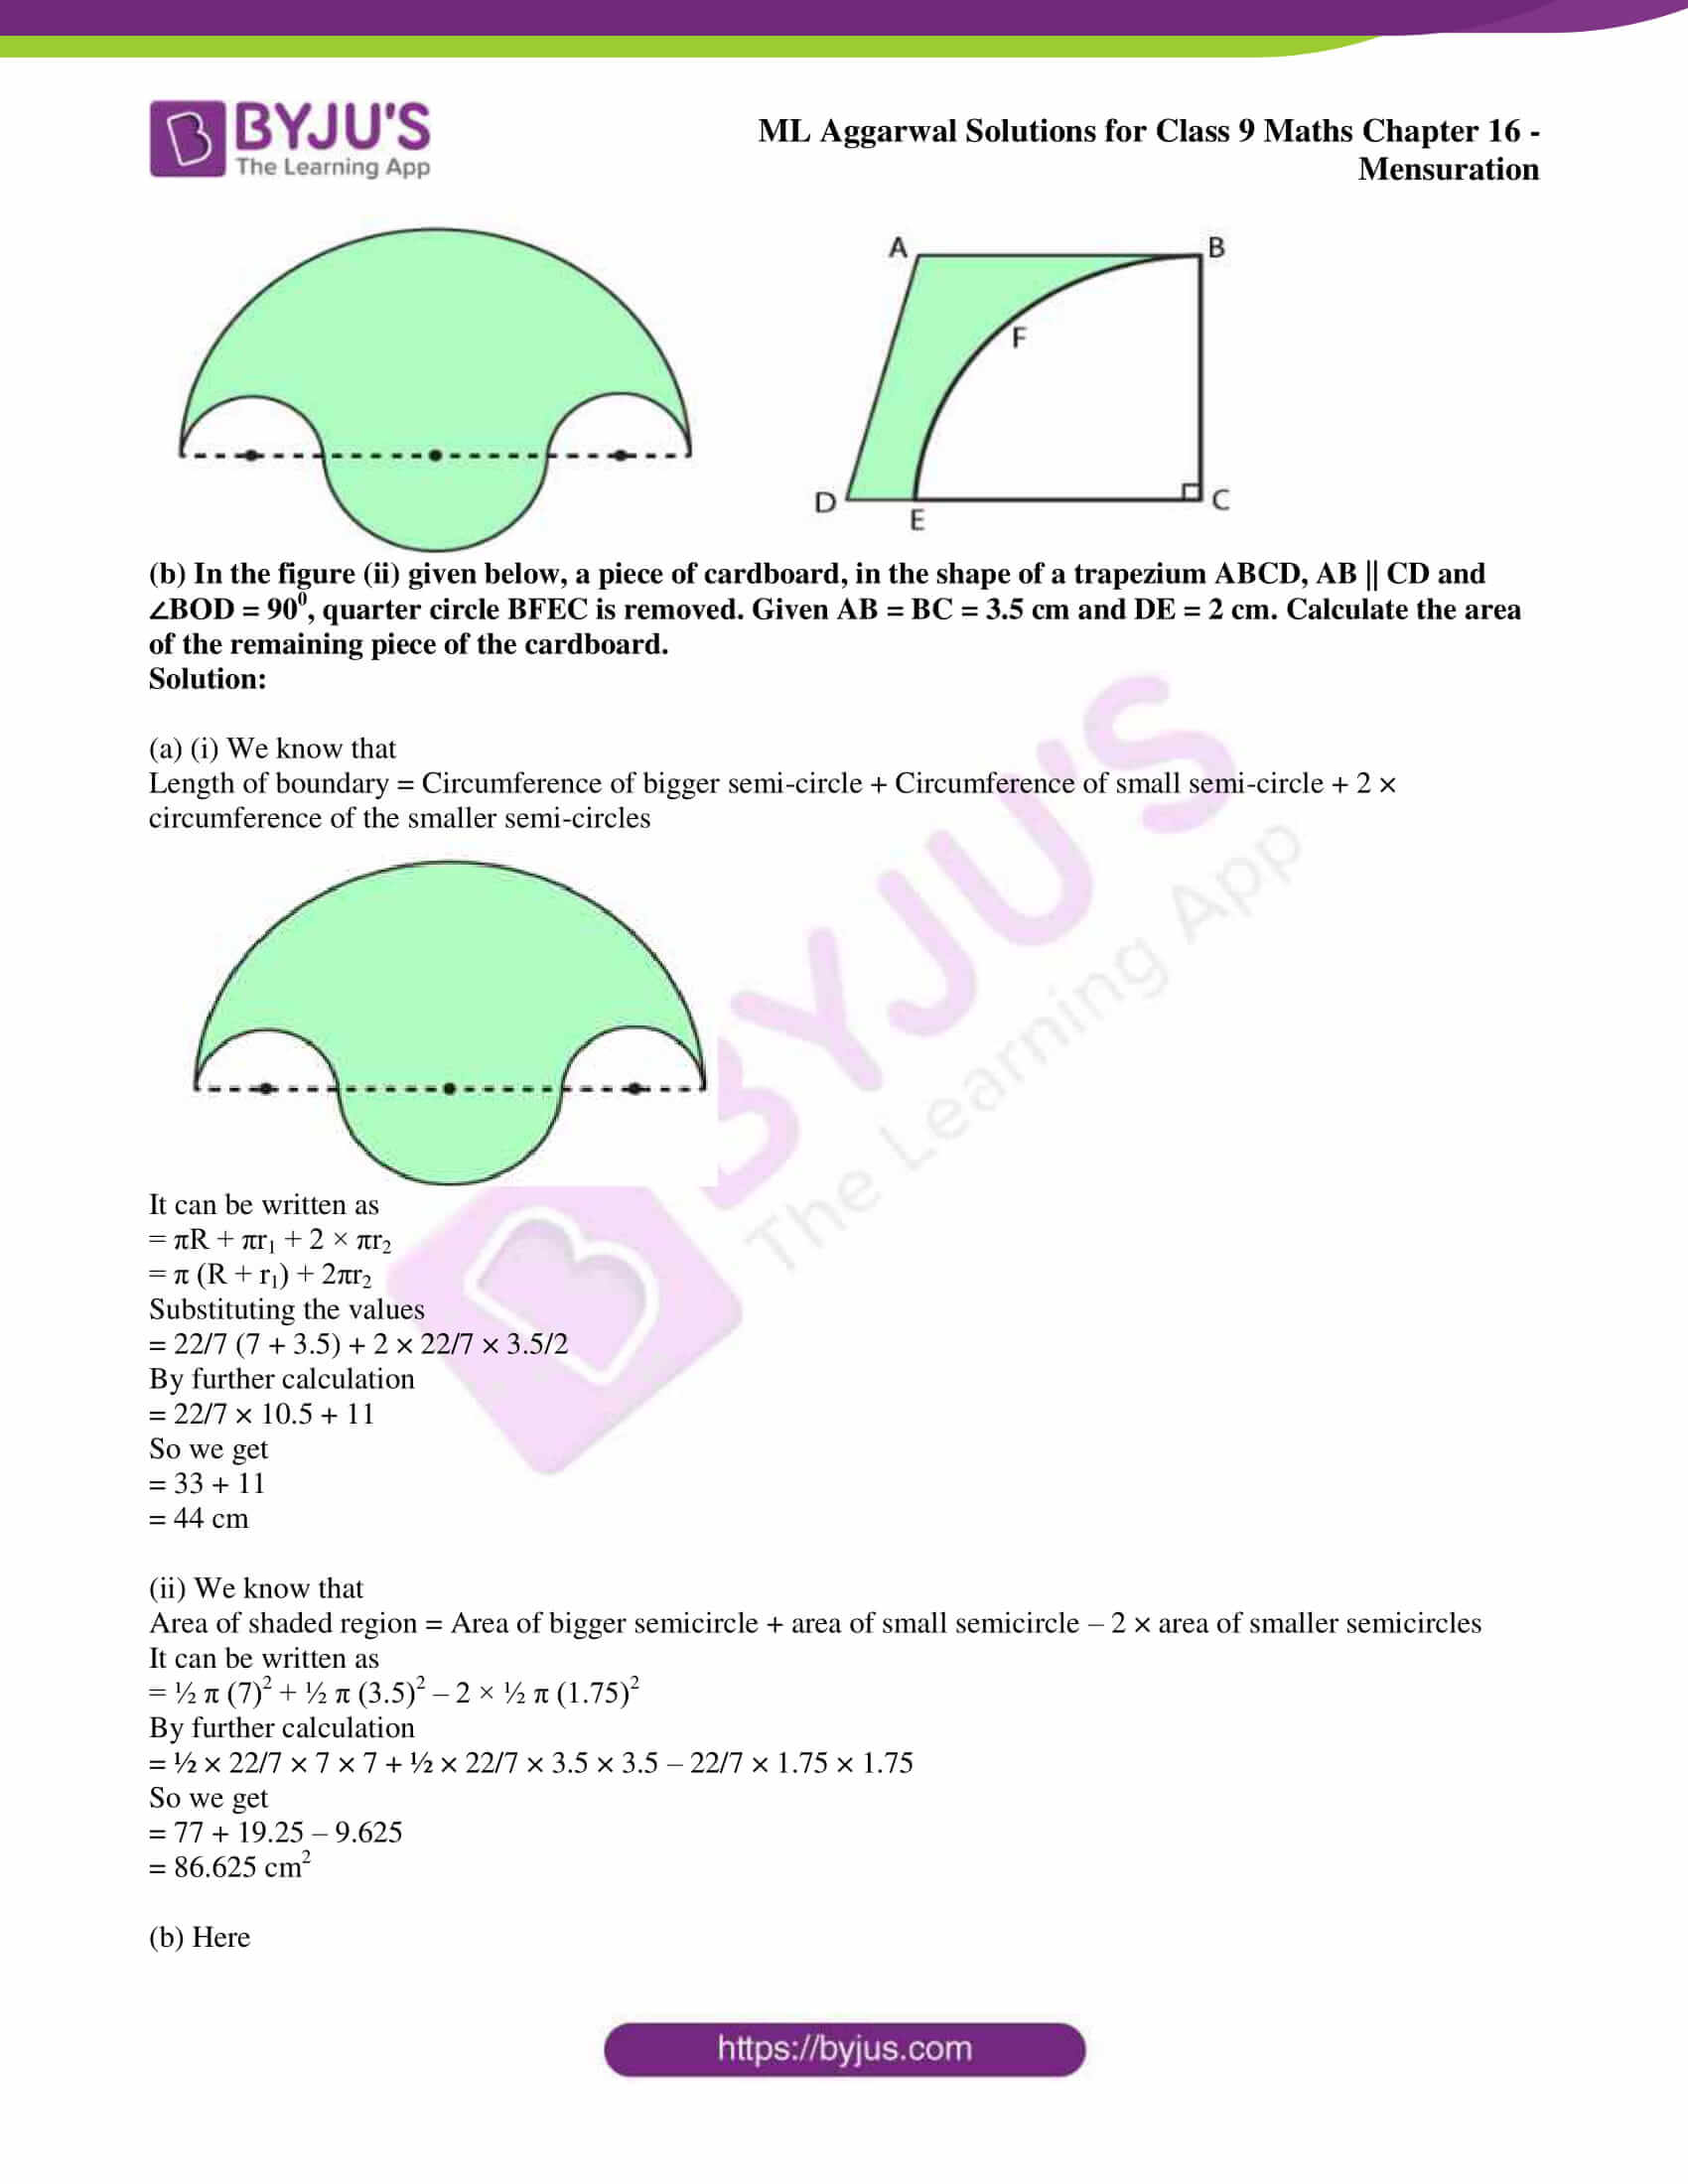 ml aggarwal solutions for class 9 maths chapter 16 108